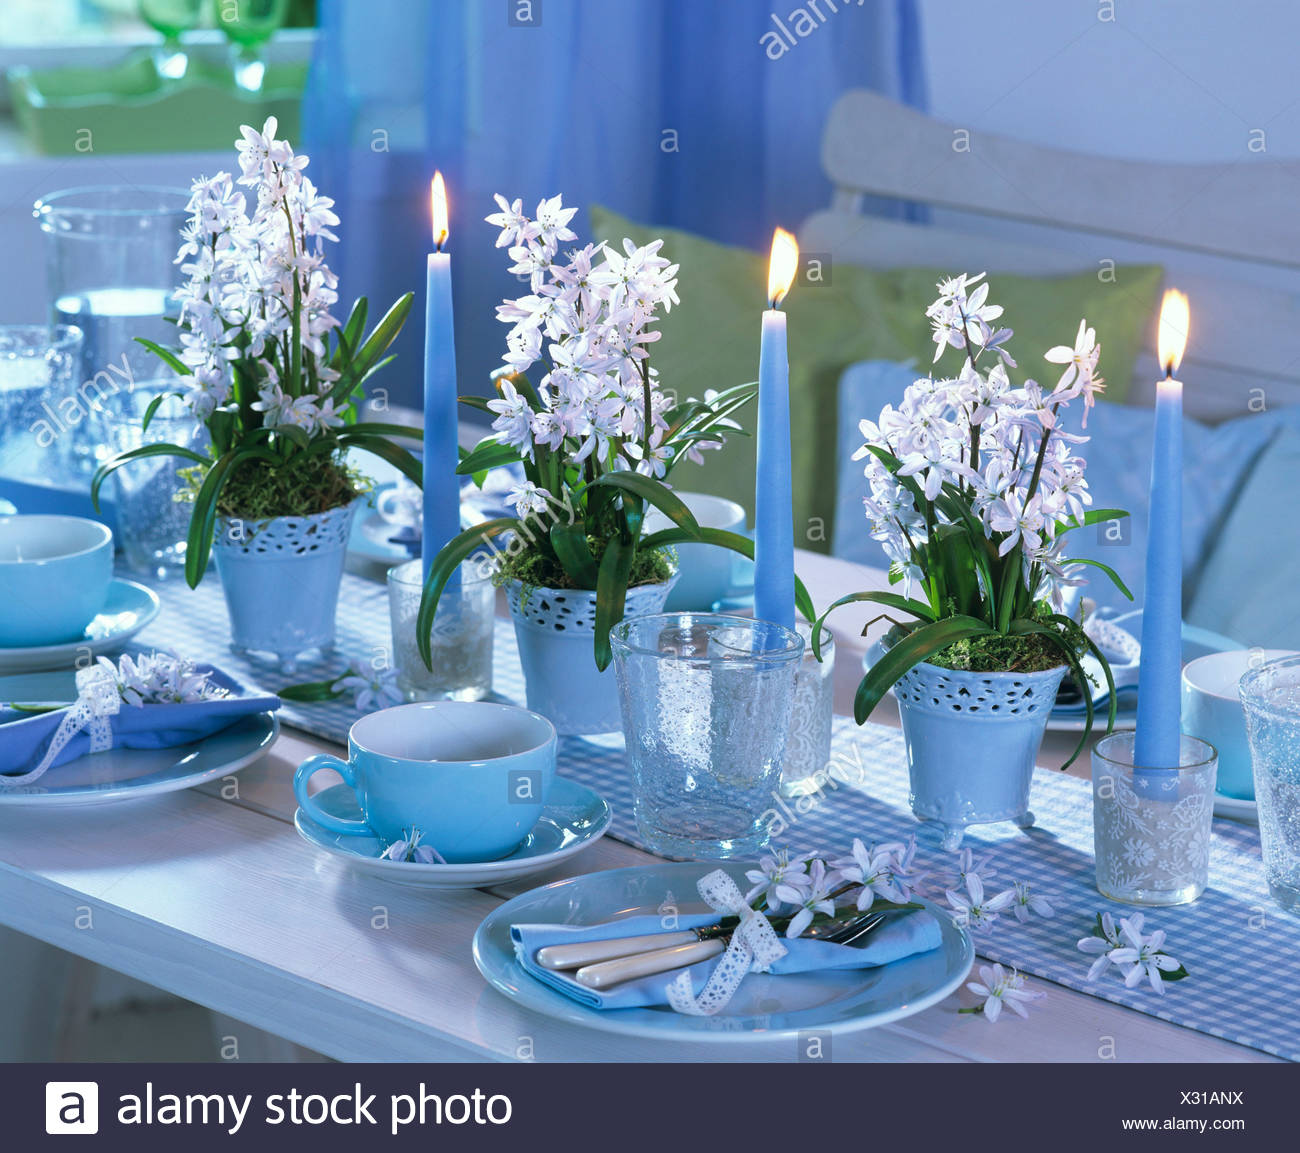 Festive table decorated with glory-of-the-snow - Stock Image